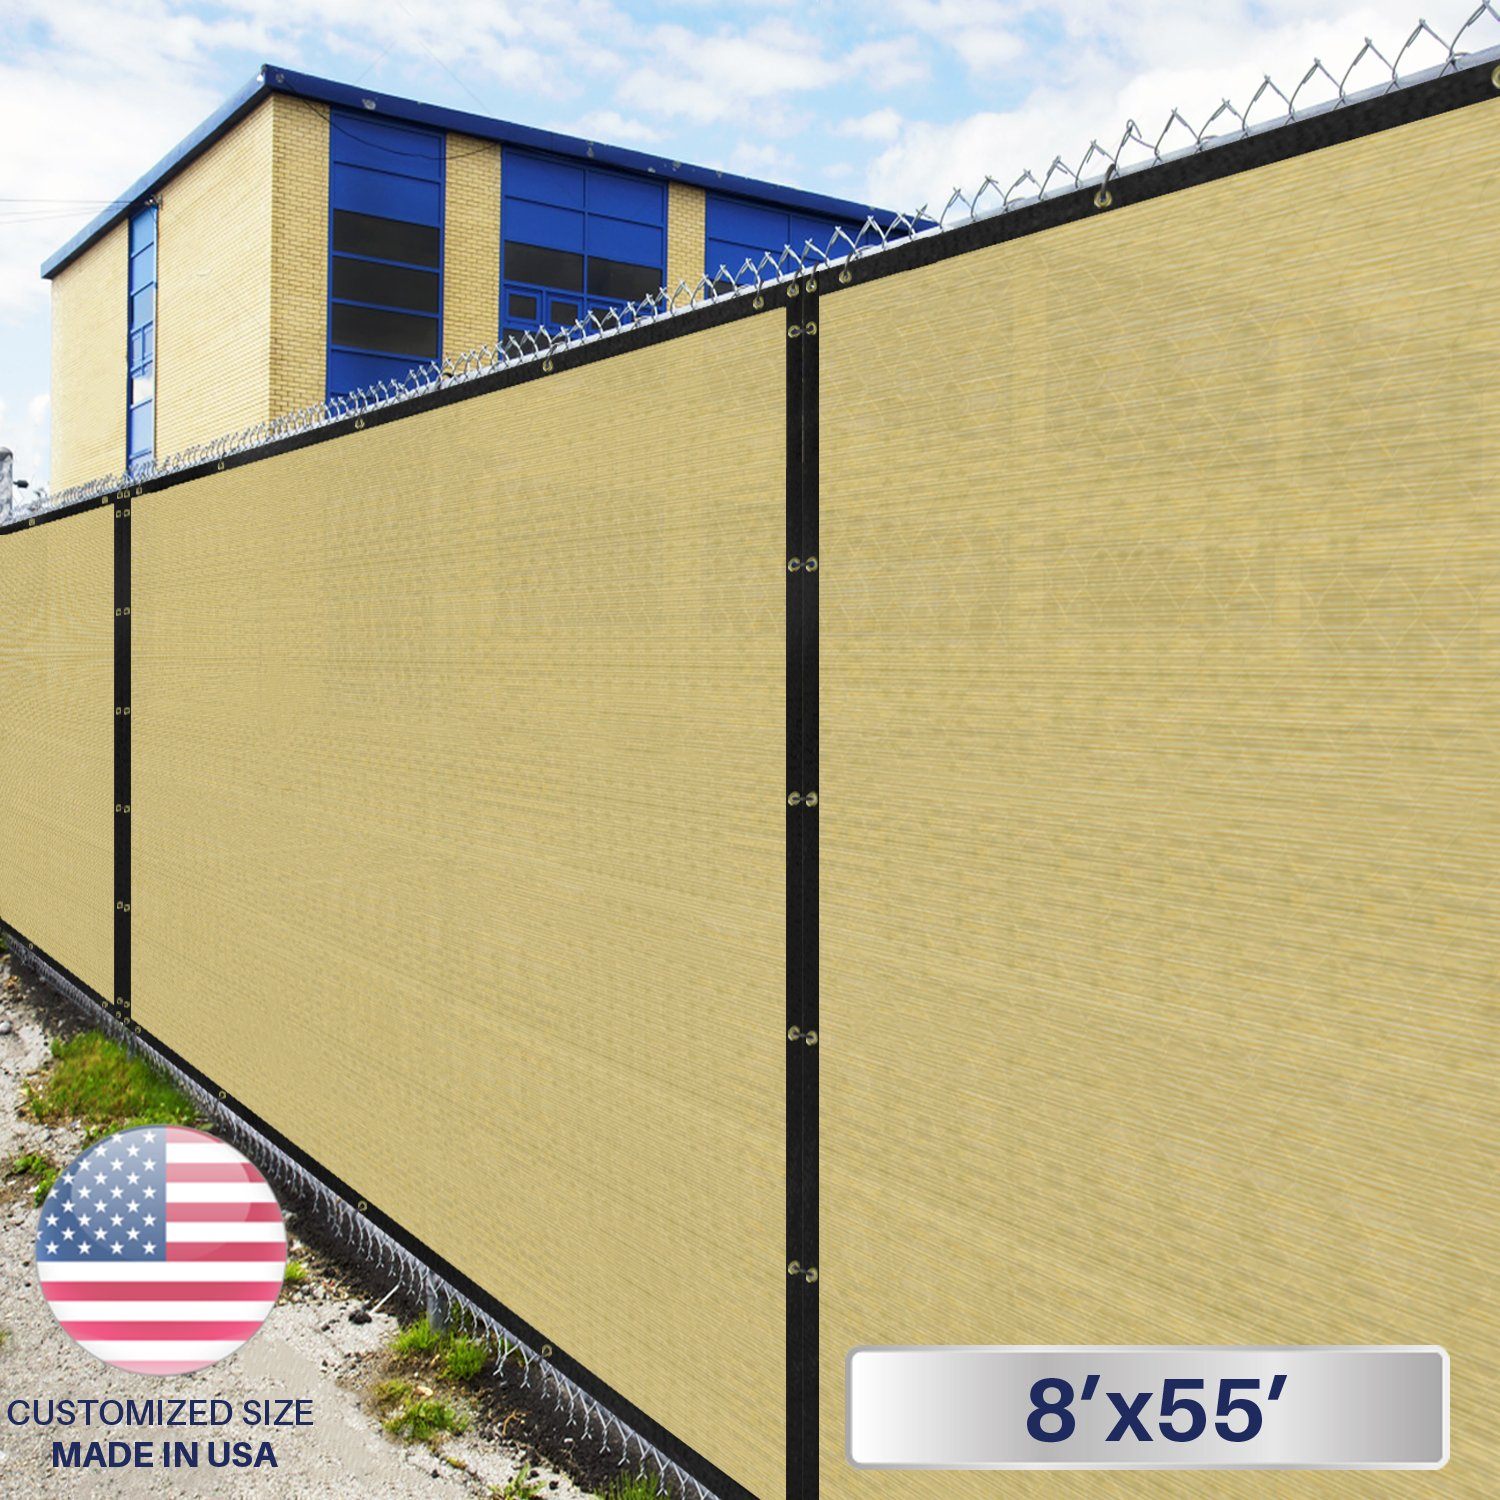 8' x 55' Privacy Fence Screen in Beige Tan with Brass Grommet 85% Blockage Windscreen Outdoor Mesh Fencing Cover Netting 150GSM Fabric - Custom Size by Windscreen4less